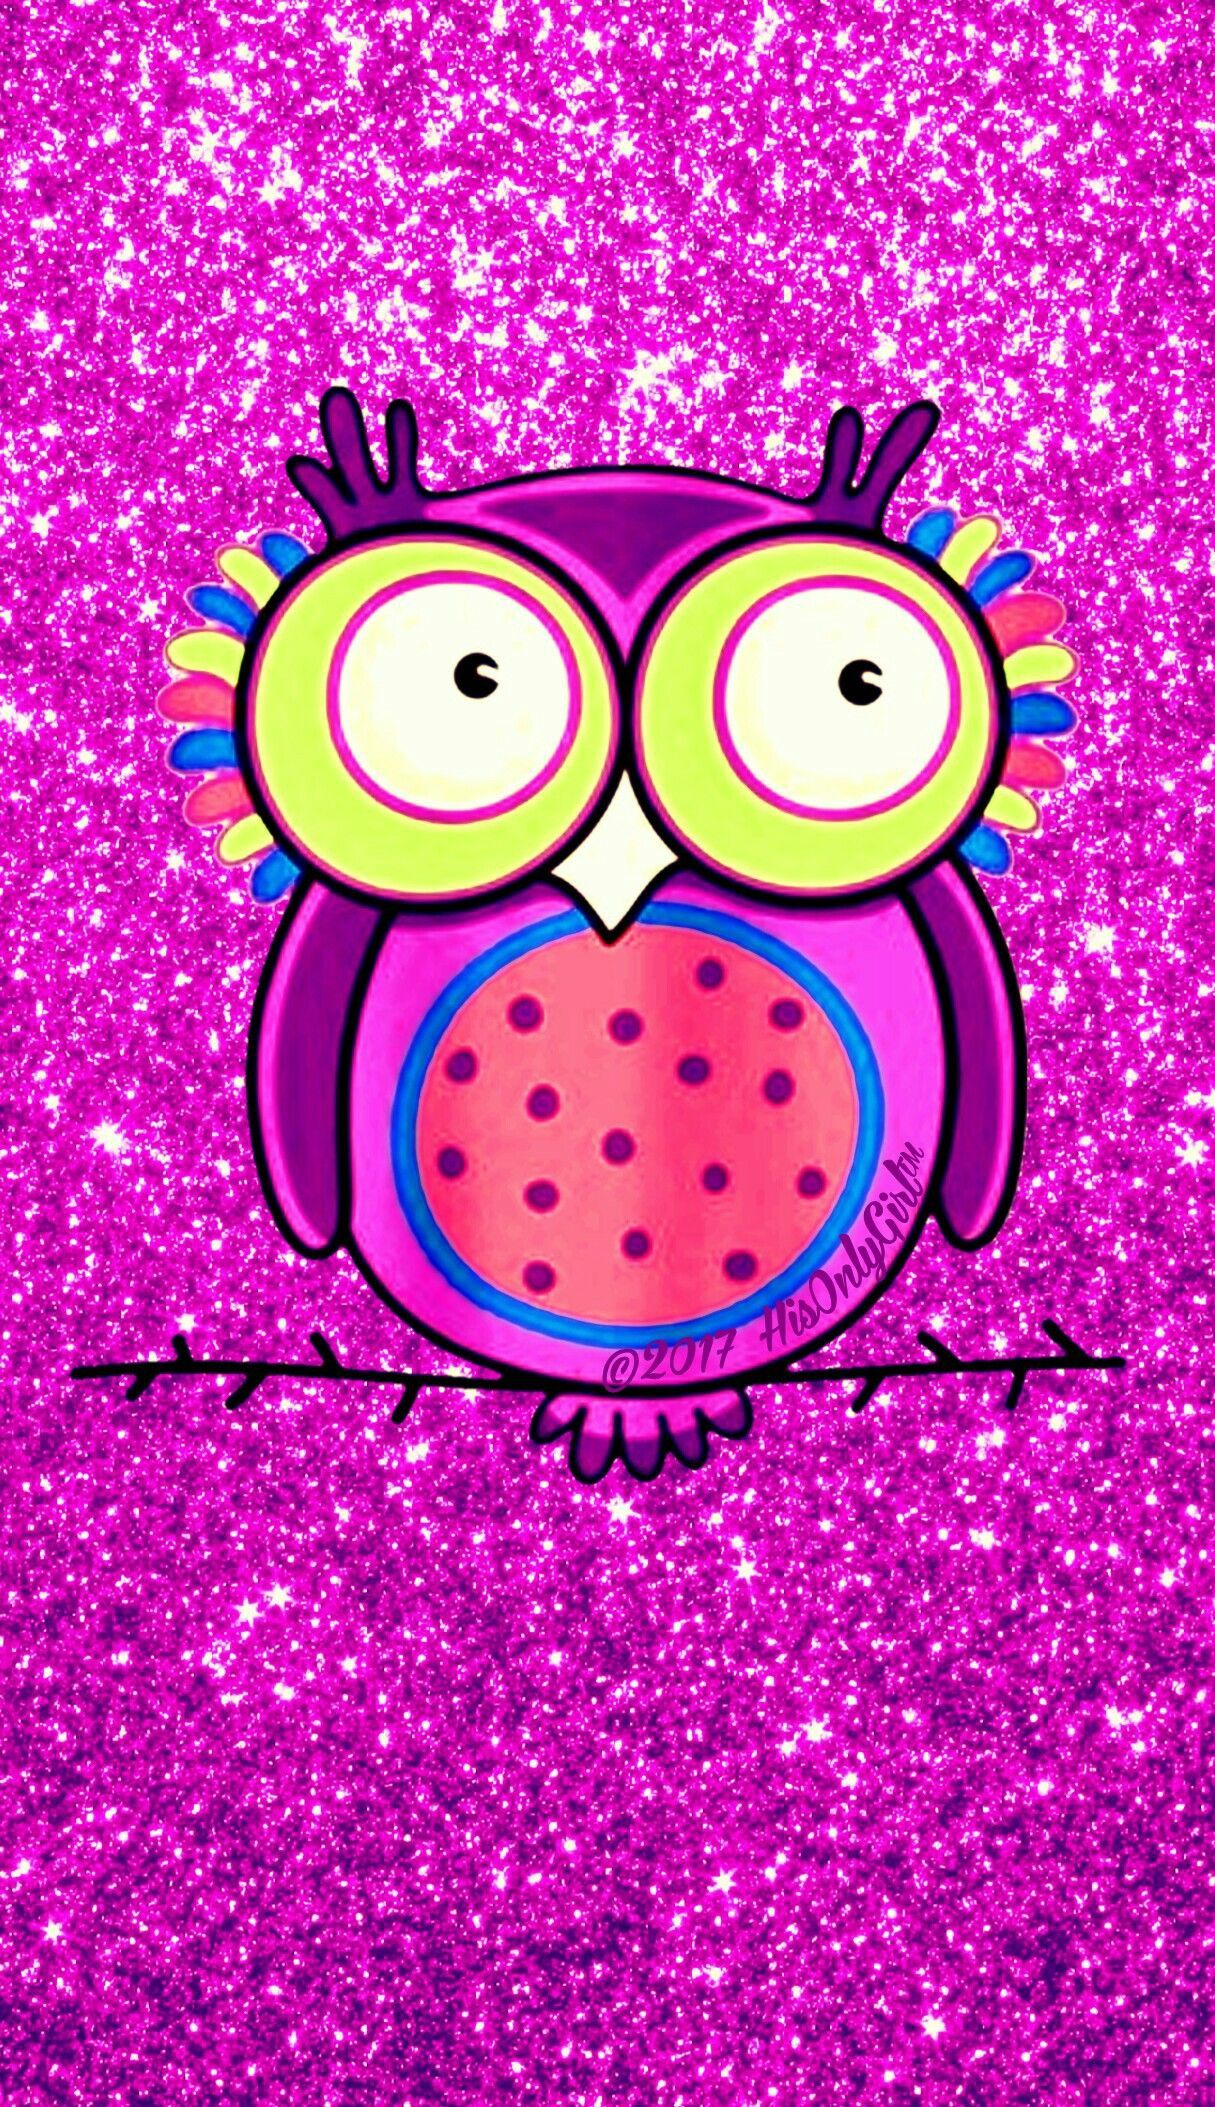 Pink owl glitter wallpaper I created for the app CocoPPa! #GlitterFondos